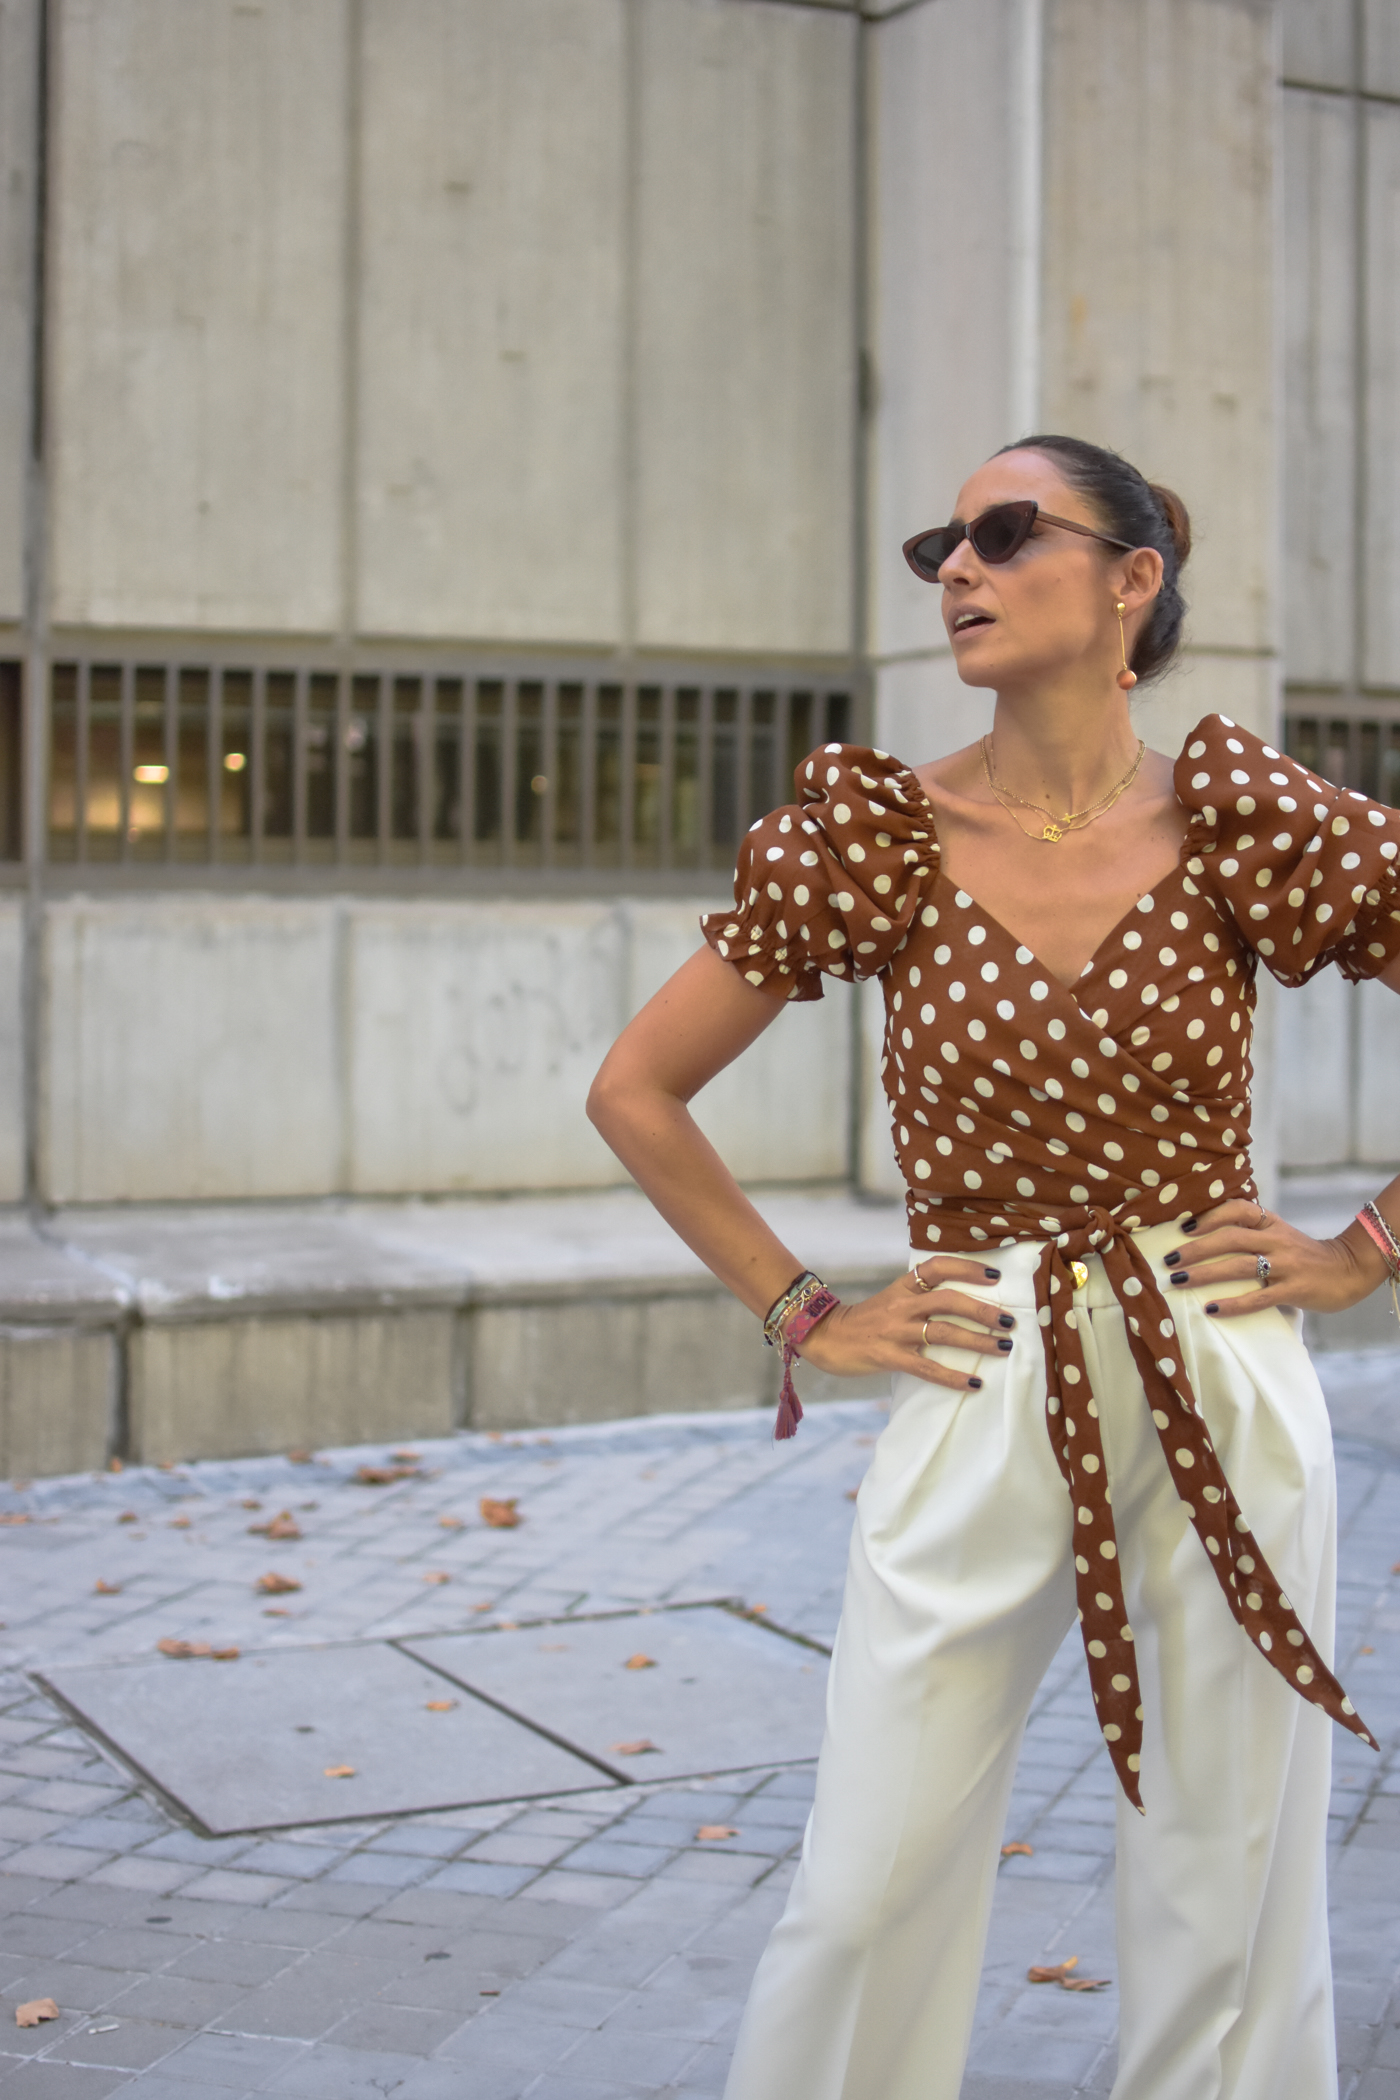 el-blog-de-silvia-top-lunares-marron-pantalon-blanco